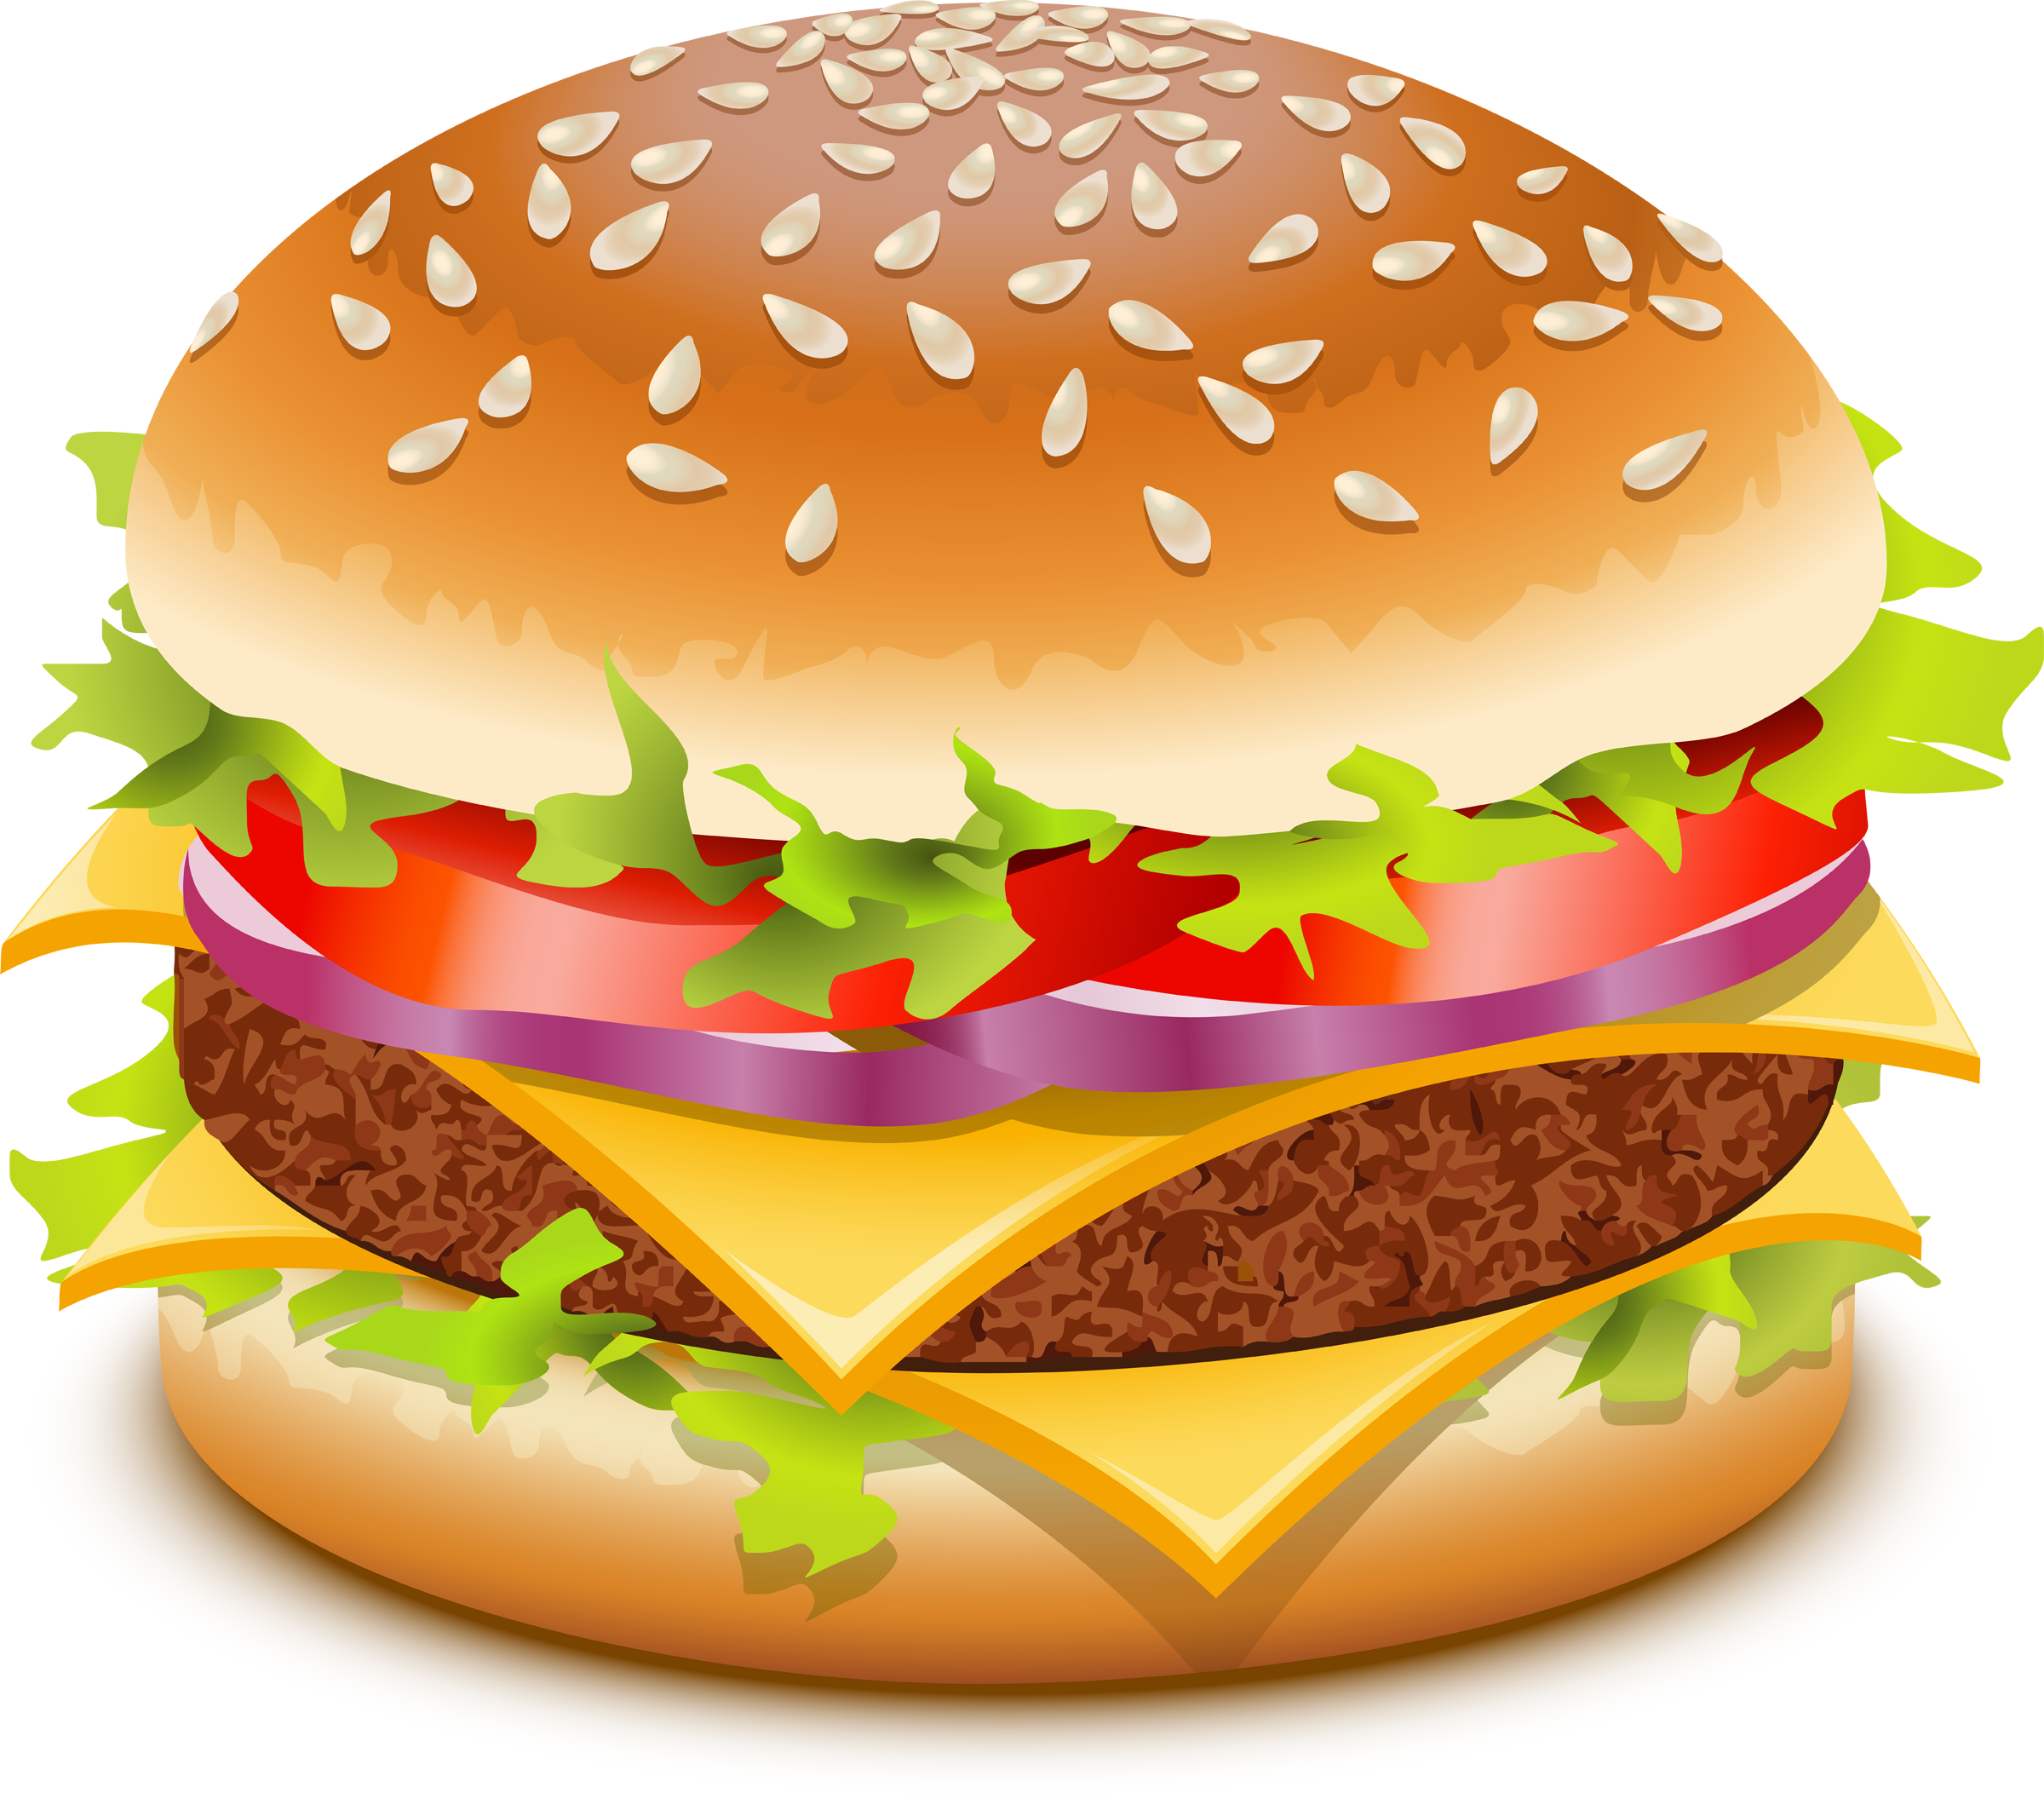 24 earphone png free cliparts that you can download to you computer - Burger Transparent Png Image